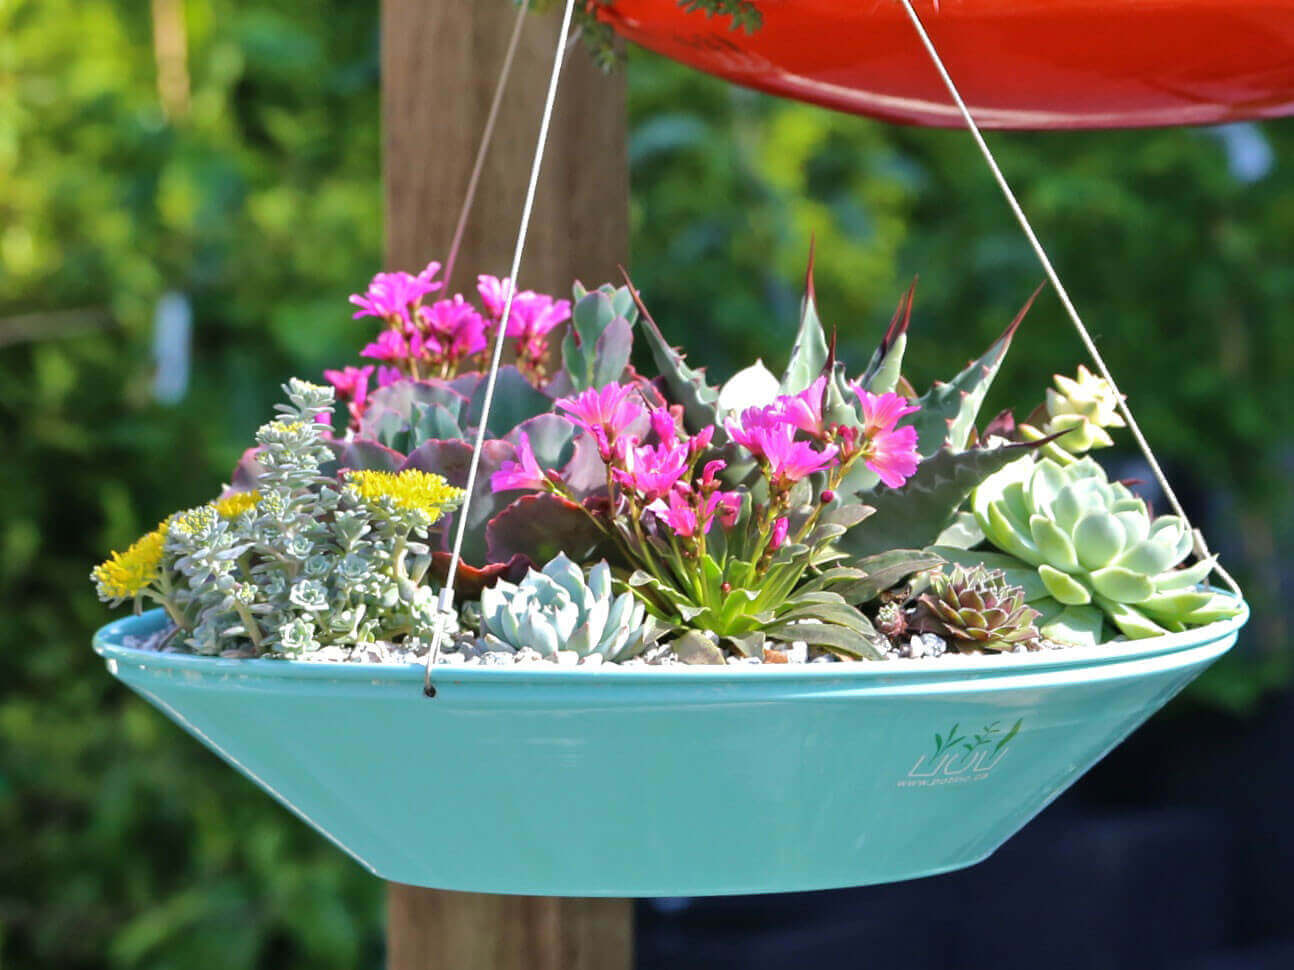 45 Best Outdoor Hanging Planter Ideas and Designs for 2017 on Plant Hanging Ideas  id=85200